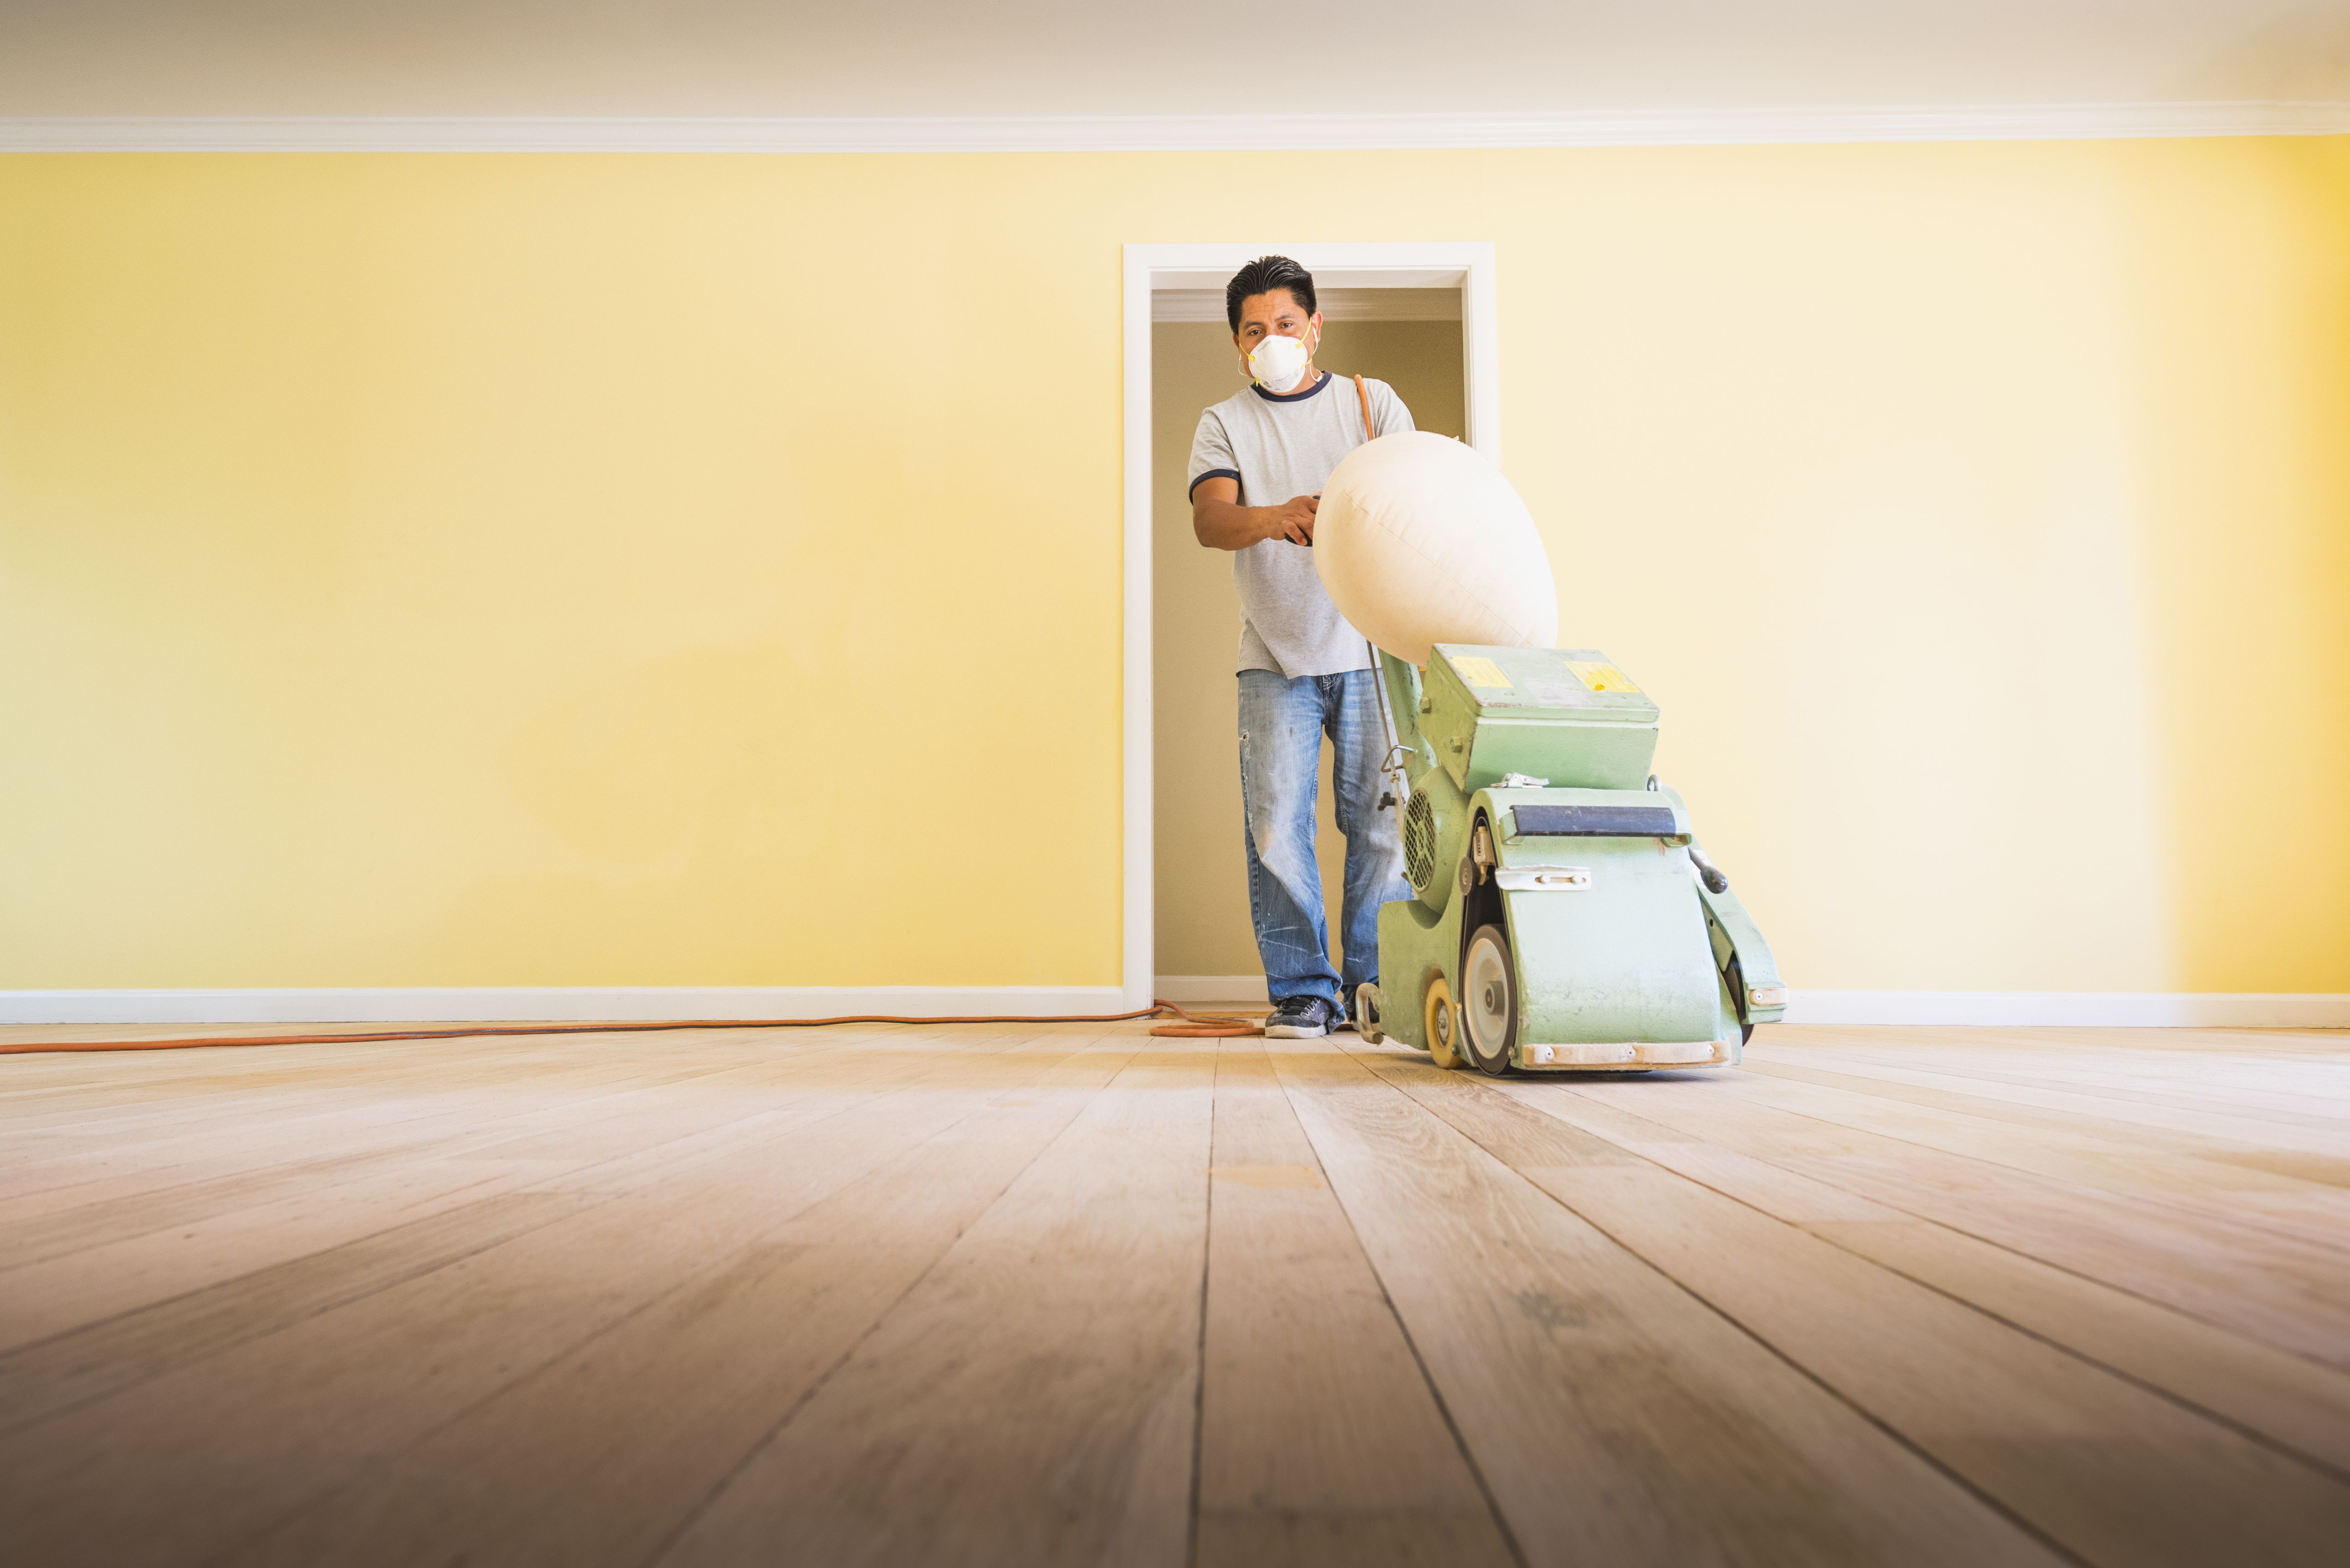 refinishing hardwood floors after carpet of should you paint walls or refinish floors first throughout floorsandingafterpainting 5a8f08dfae9ab80037d9d878